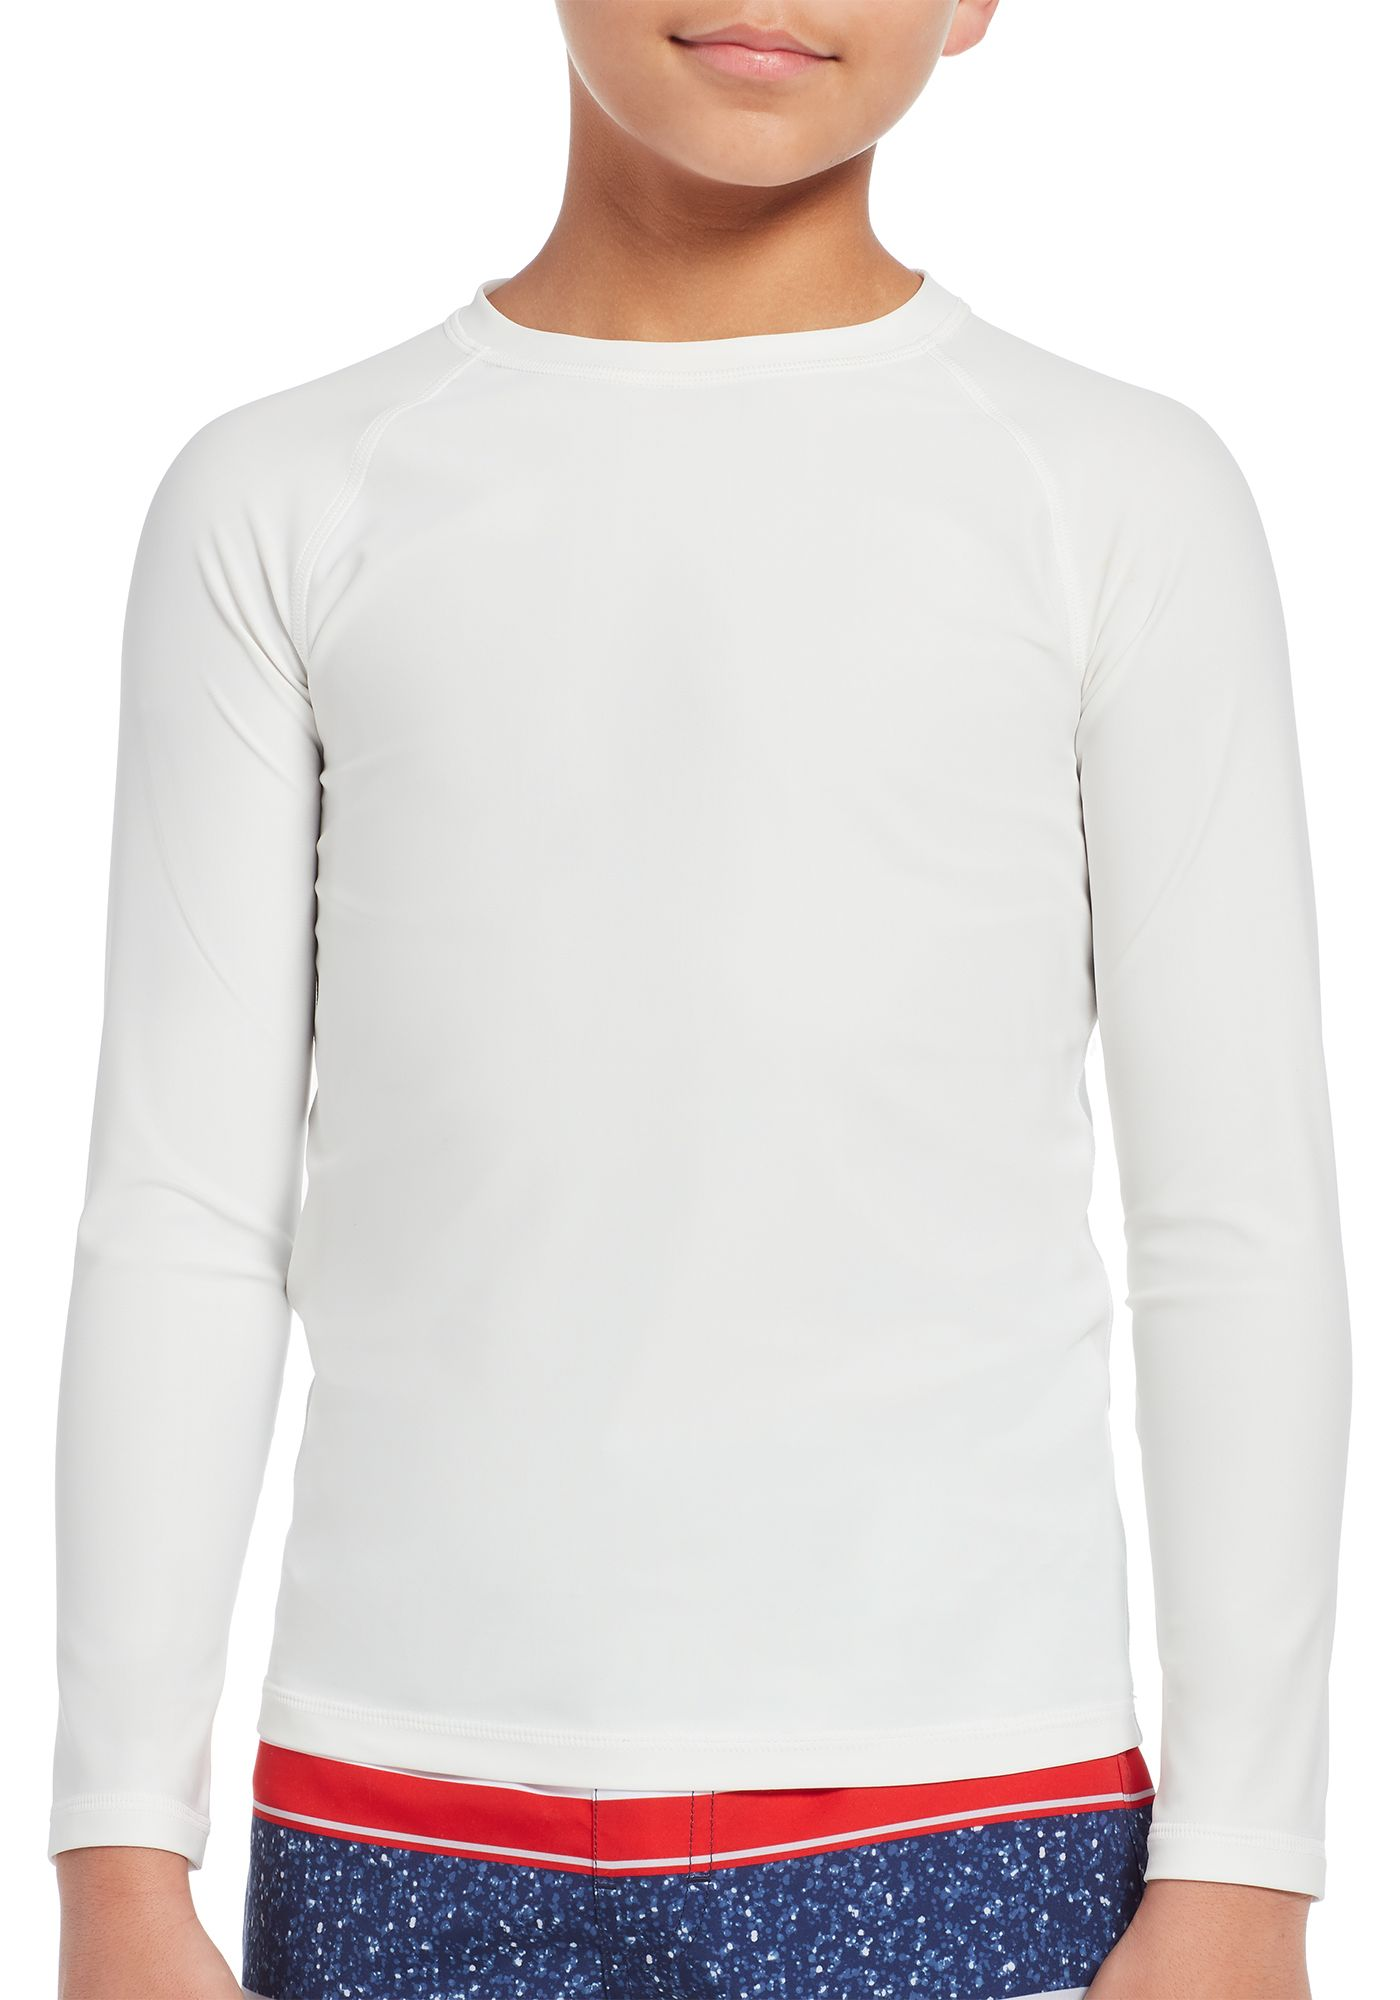 DSG Boys' Corey Long Sleeve Rash Guard